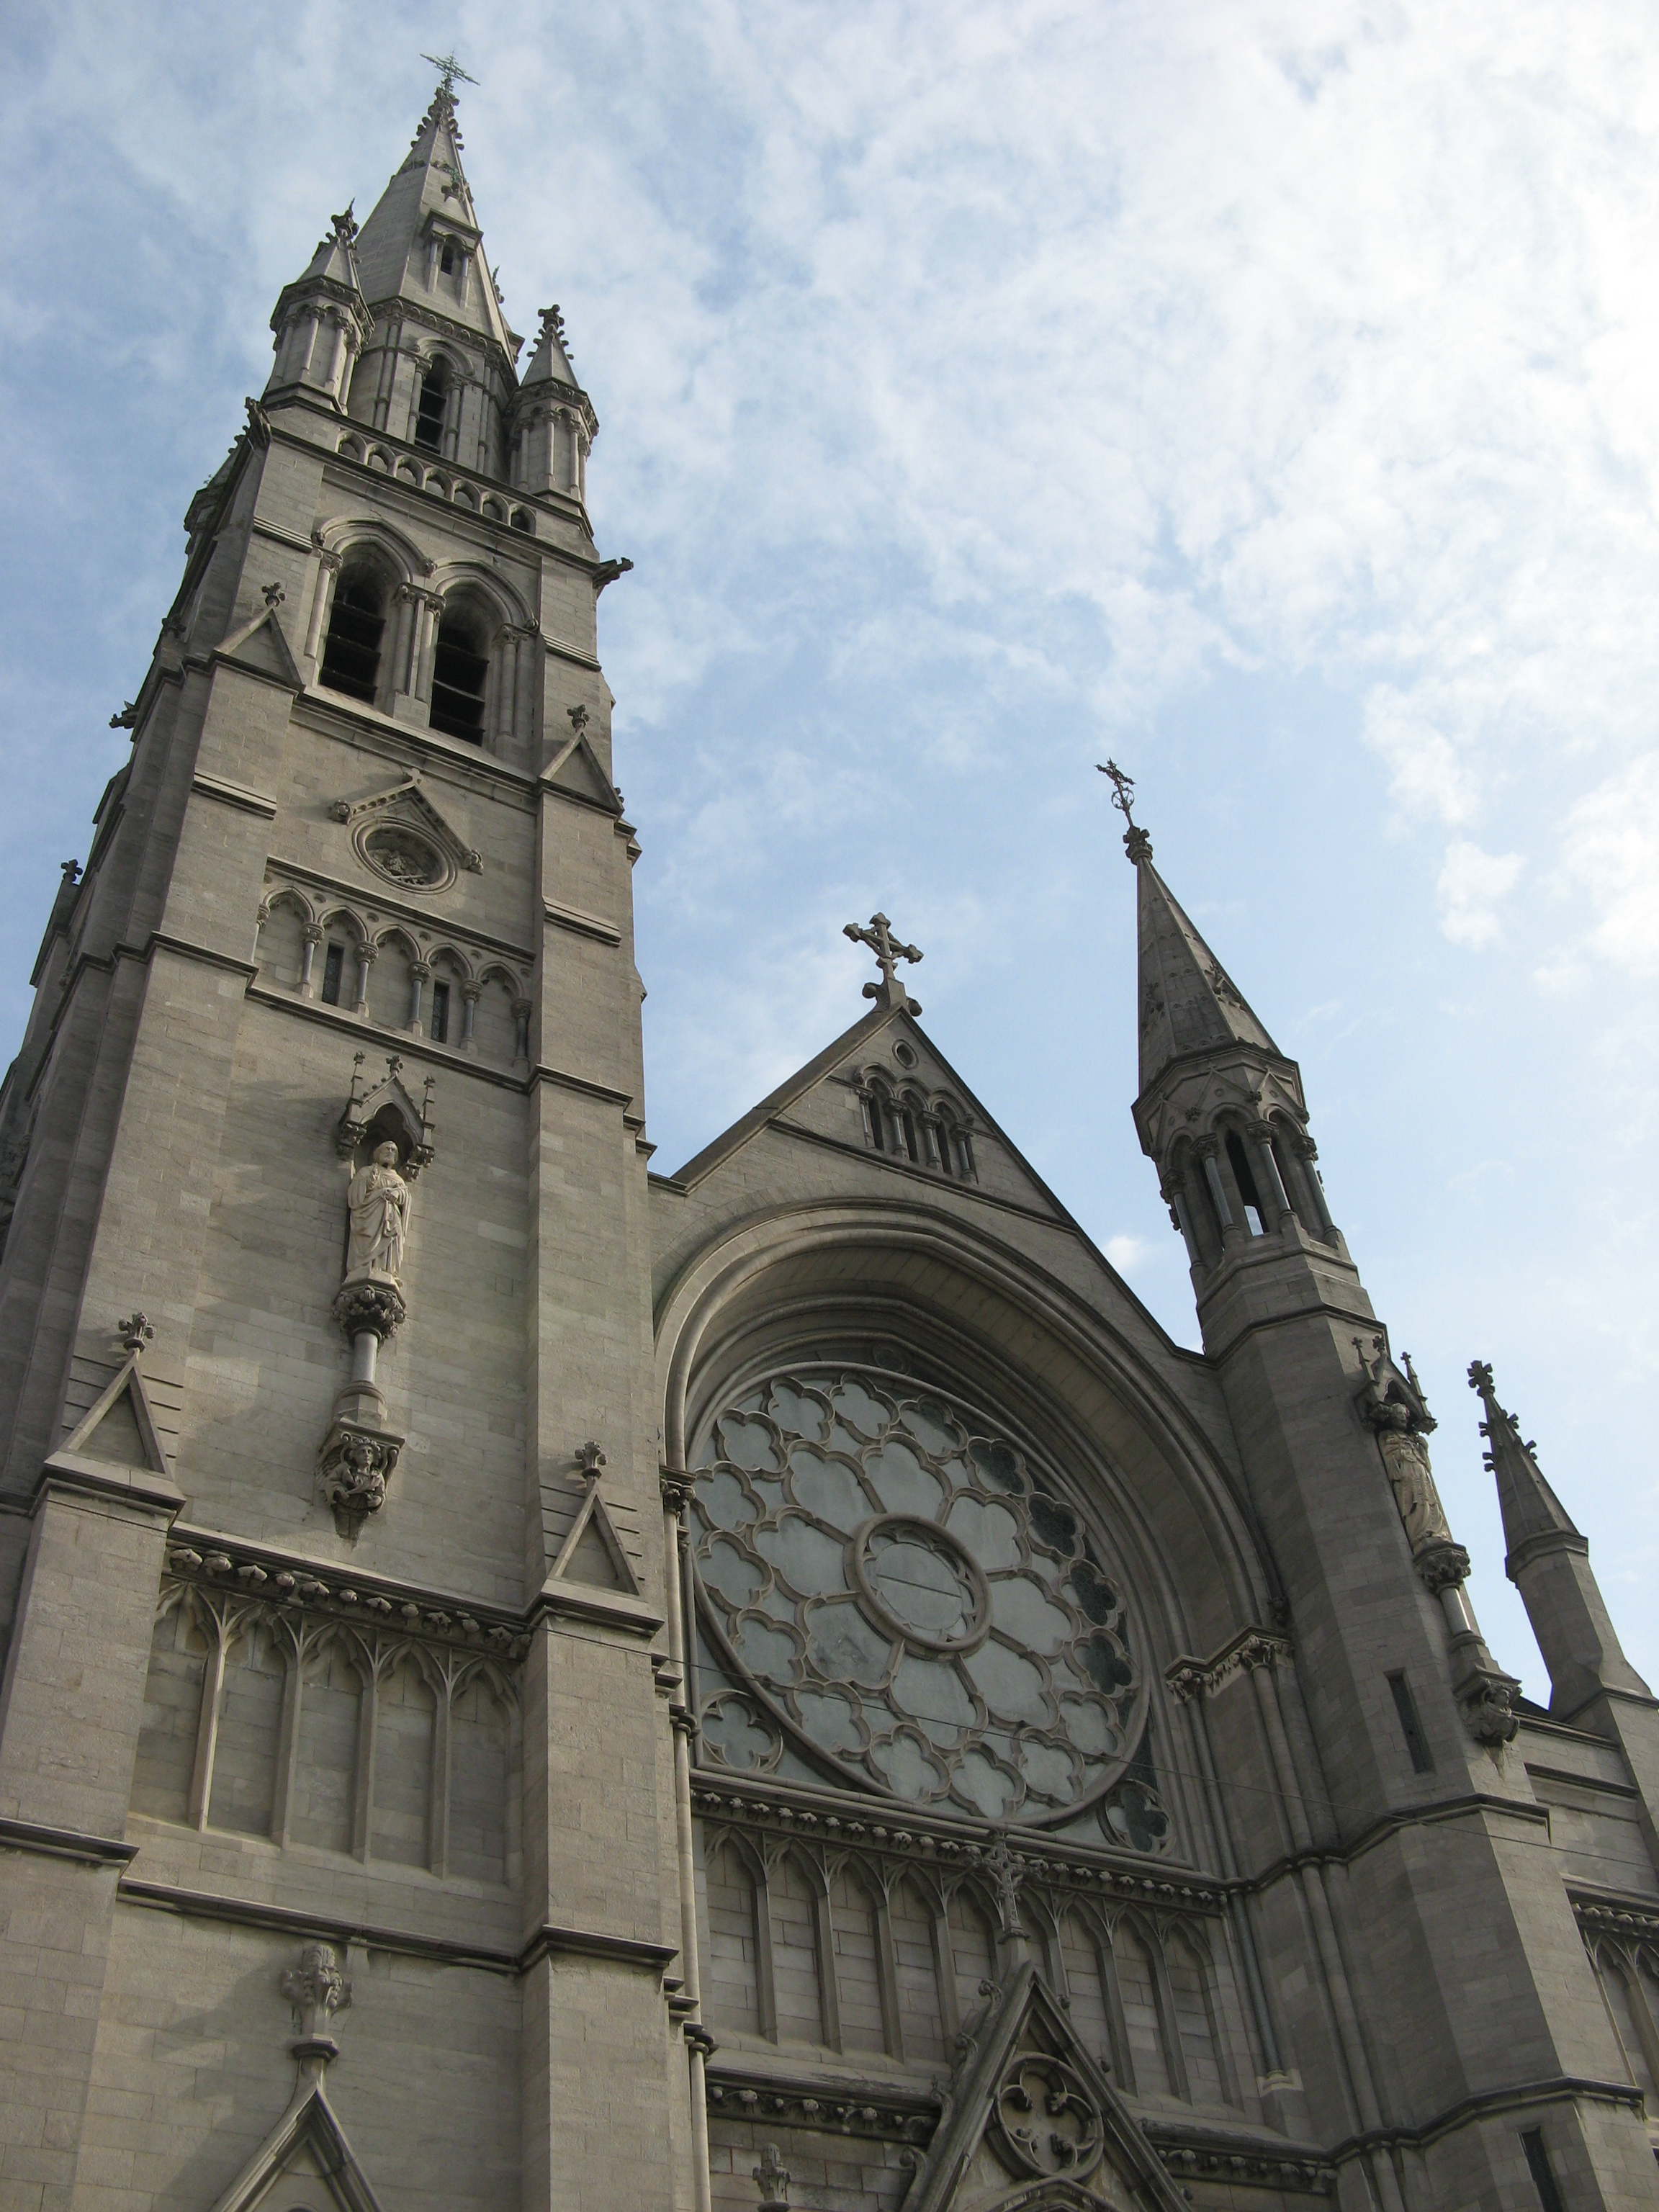 St Peter's Roman Catholic Church Drogheda, Apr 2010 - Drogheda, County Louth, Ireland. Exterior of St ...